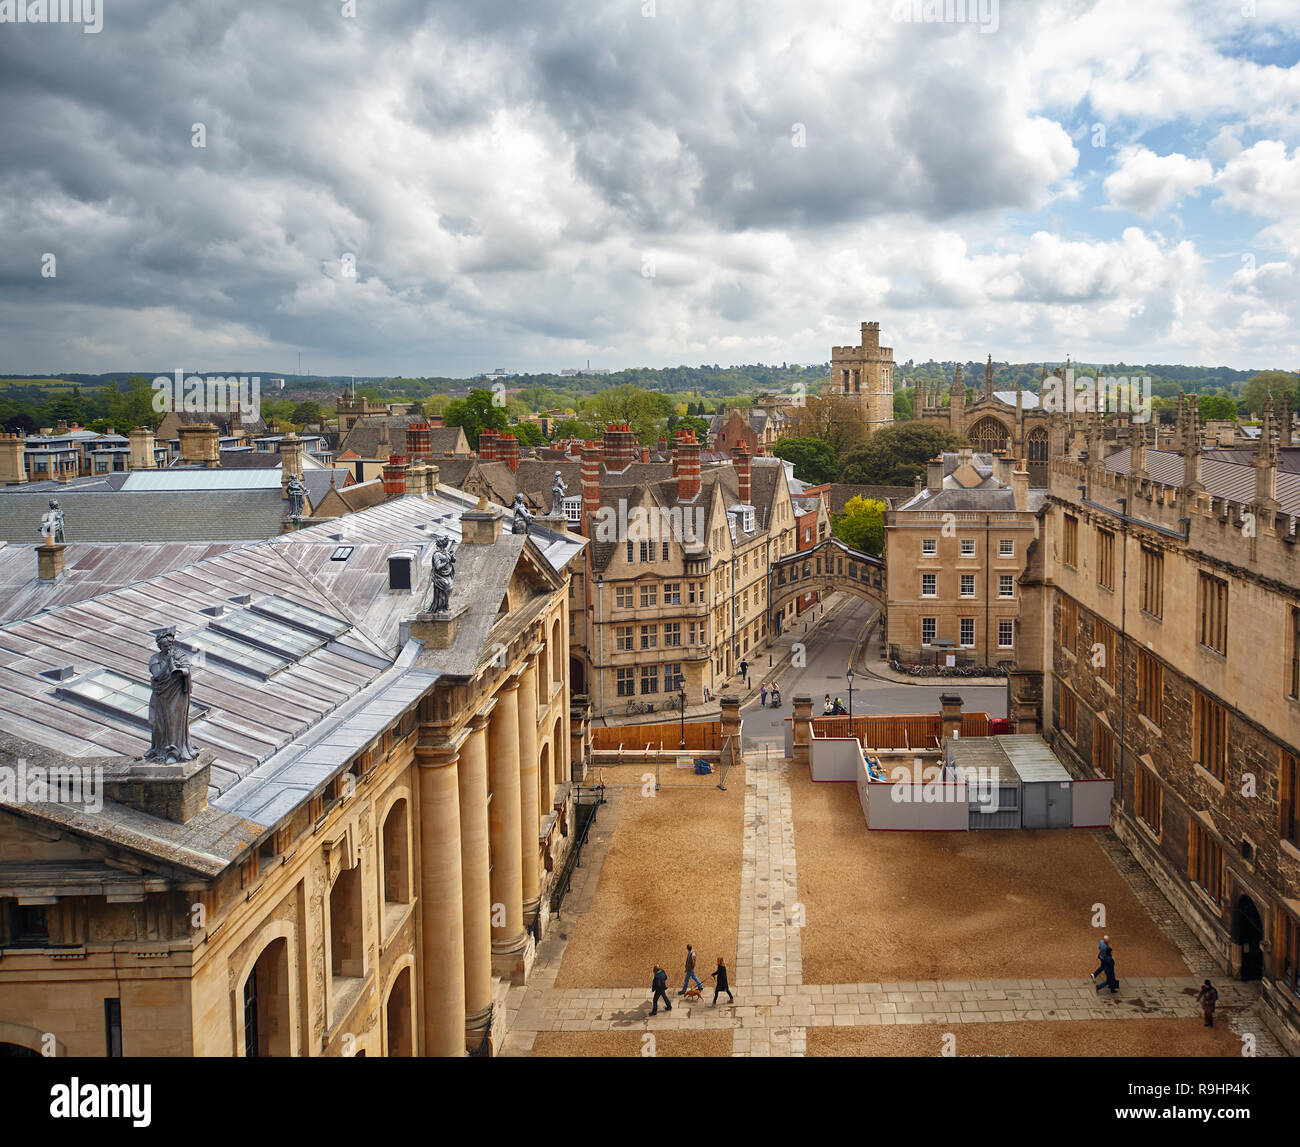 The view from the cupola of Sheldonian Theatre to the intersection of Catte street and New College line, Hertford bridge and bell tower of New college - Stock Image